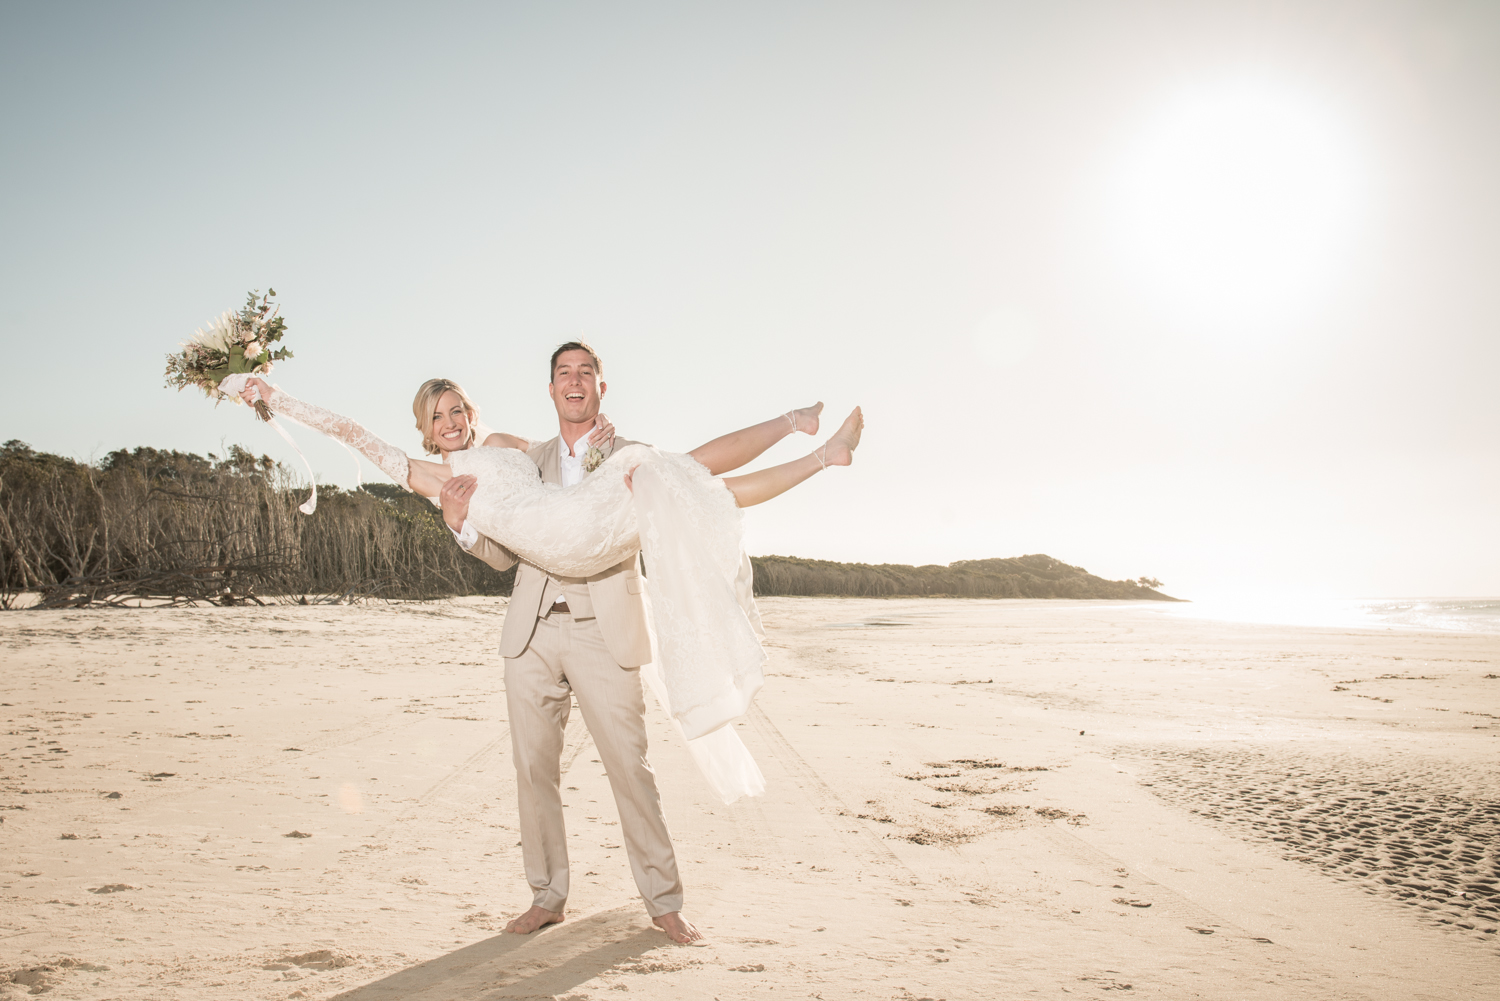 beach dancing and revelling after a wedding